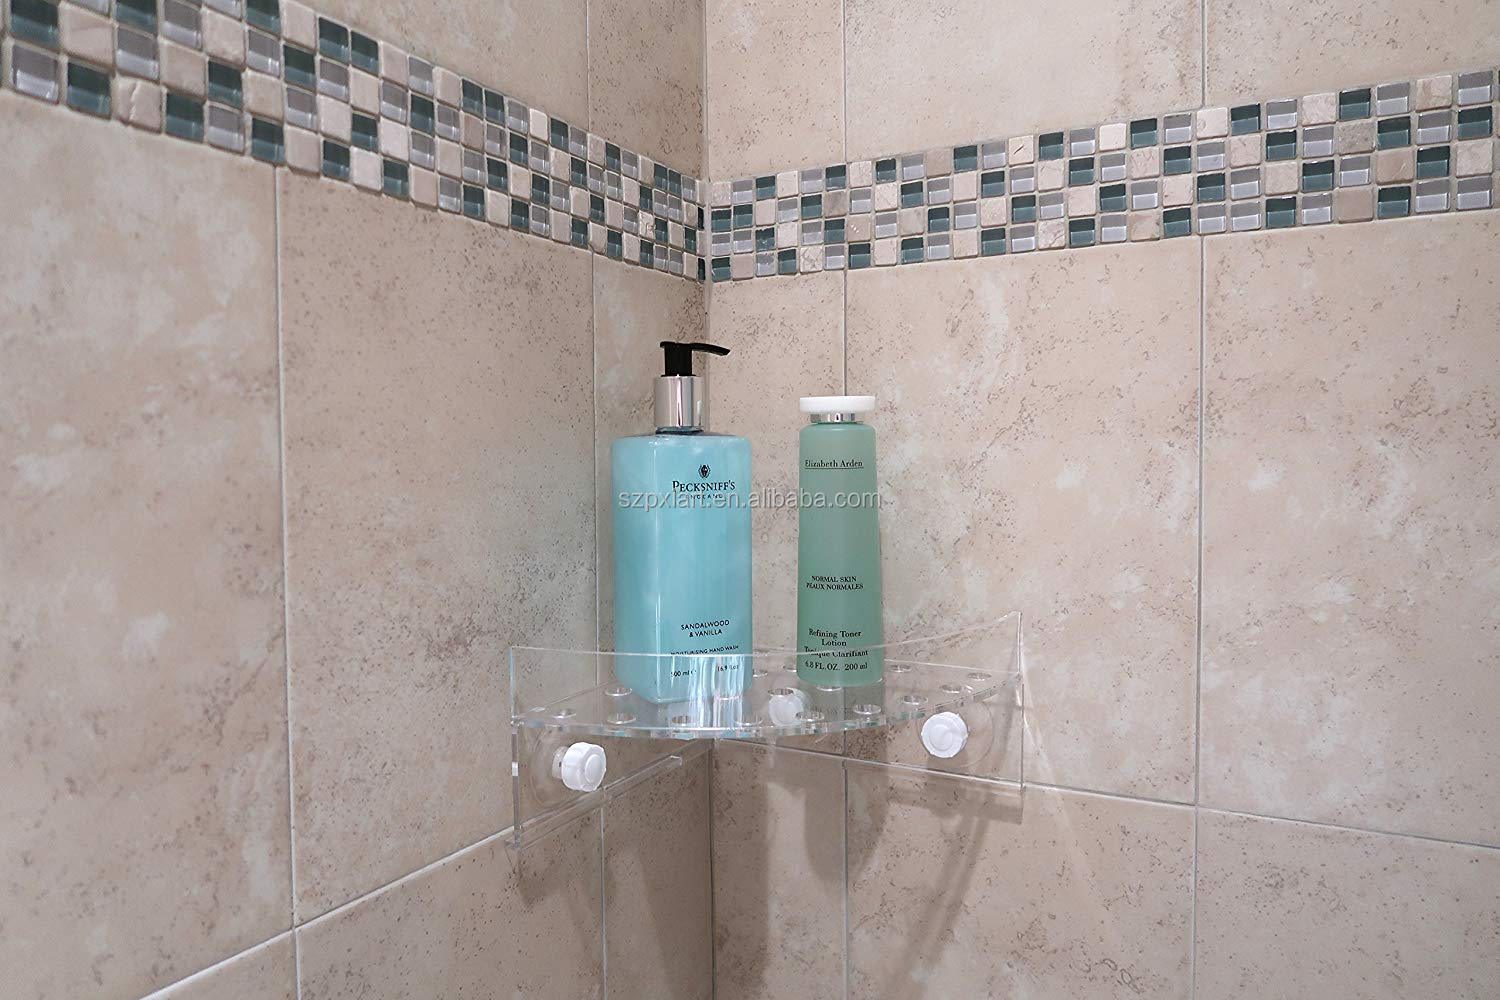 high-Design corner shower stand - shower cup holder, bath supplies, towels, etc. made in shenzhen